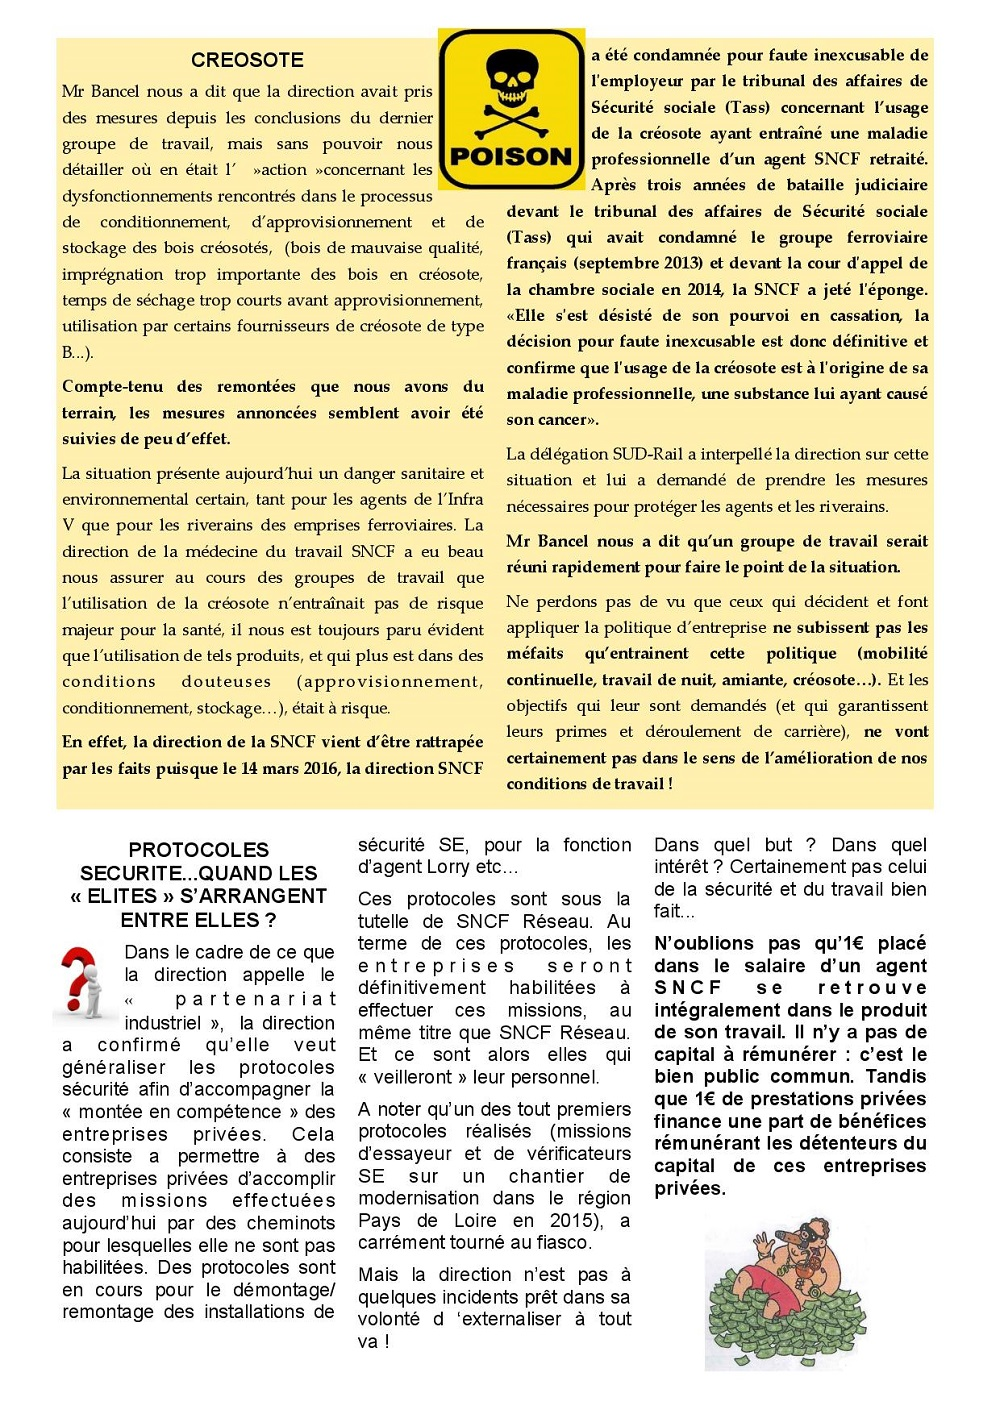 Equipement reunion nationale securite 03-2016-page-003